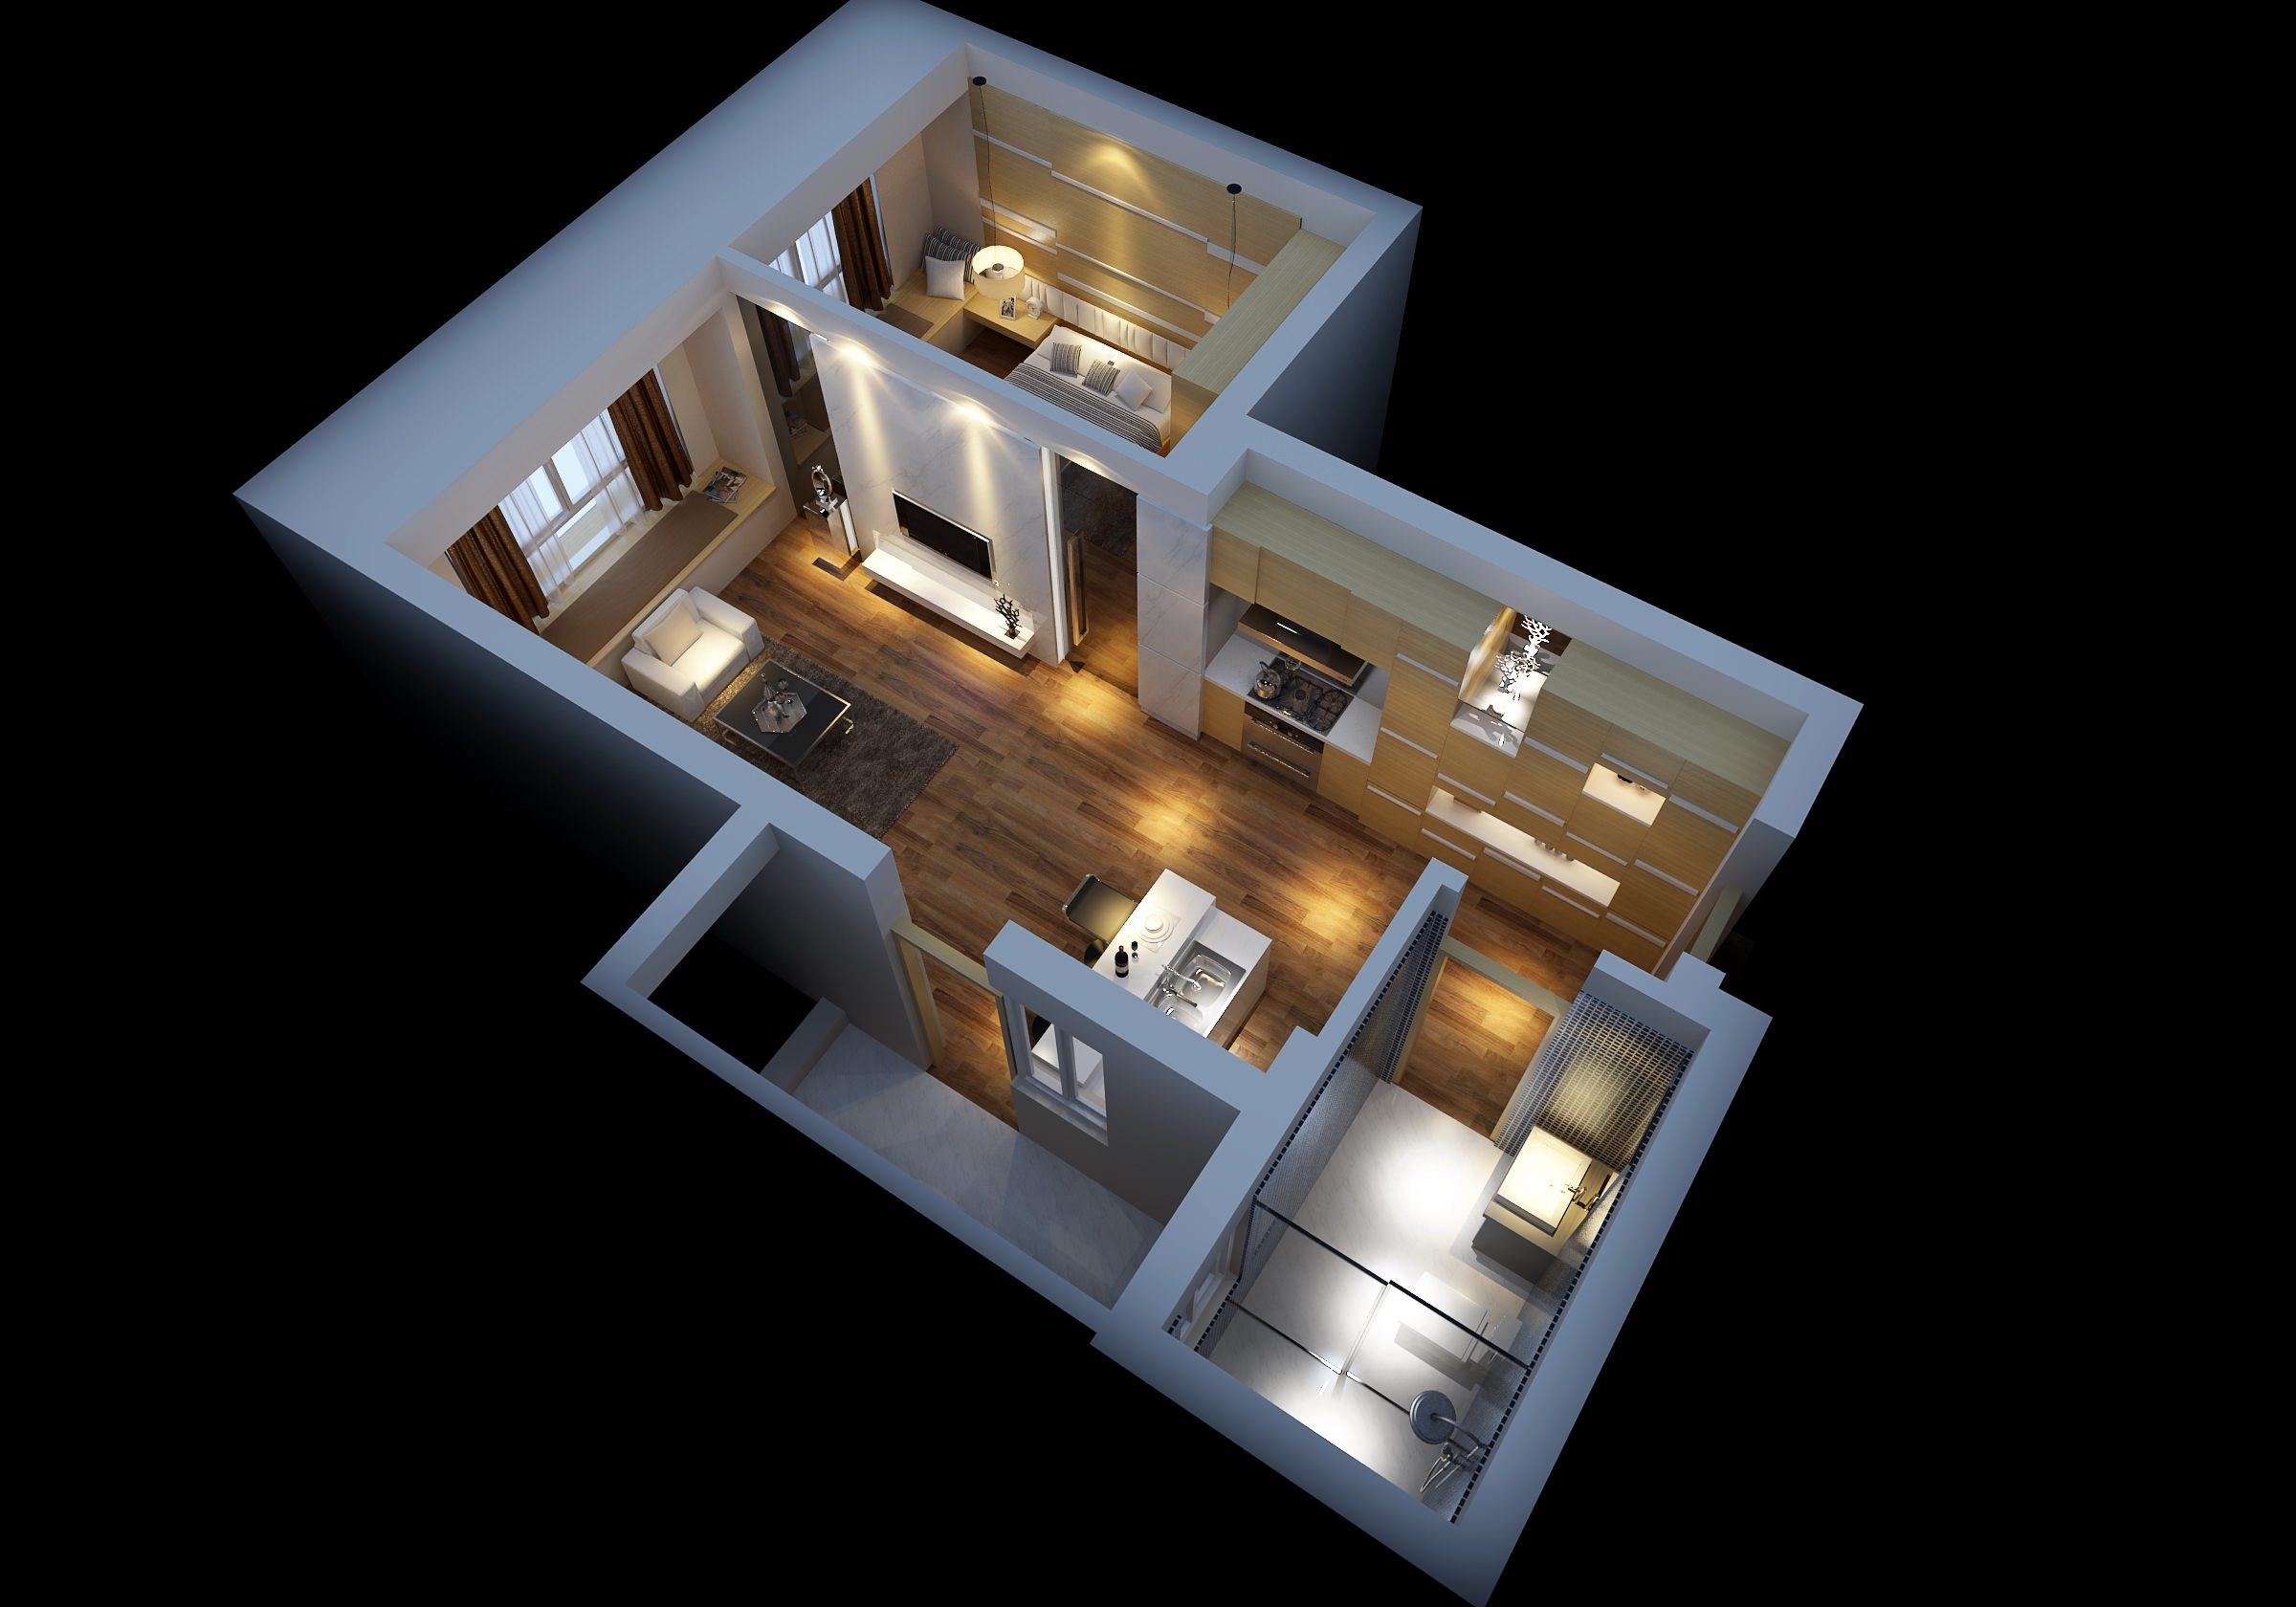 Modern house interior with wooden floor fu 3d model max for New model house interior design